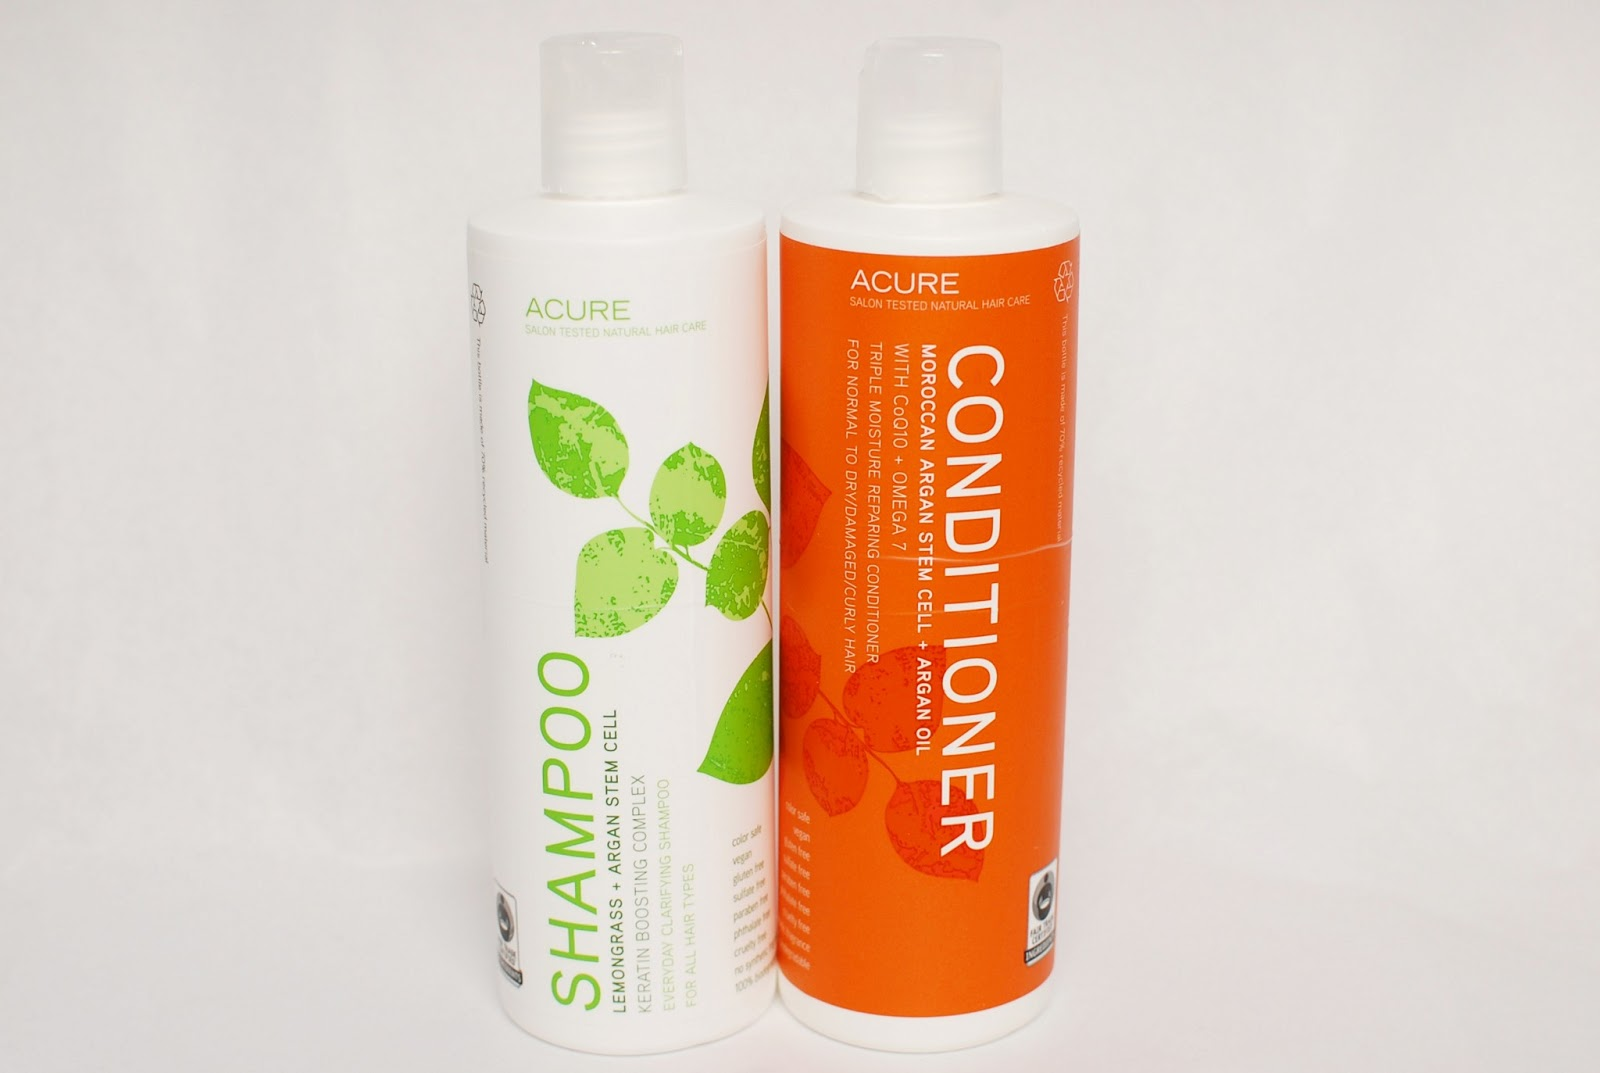 Acure Shampoo Lemongrass, Conditioner Argan Oil